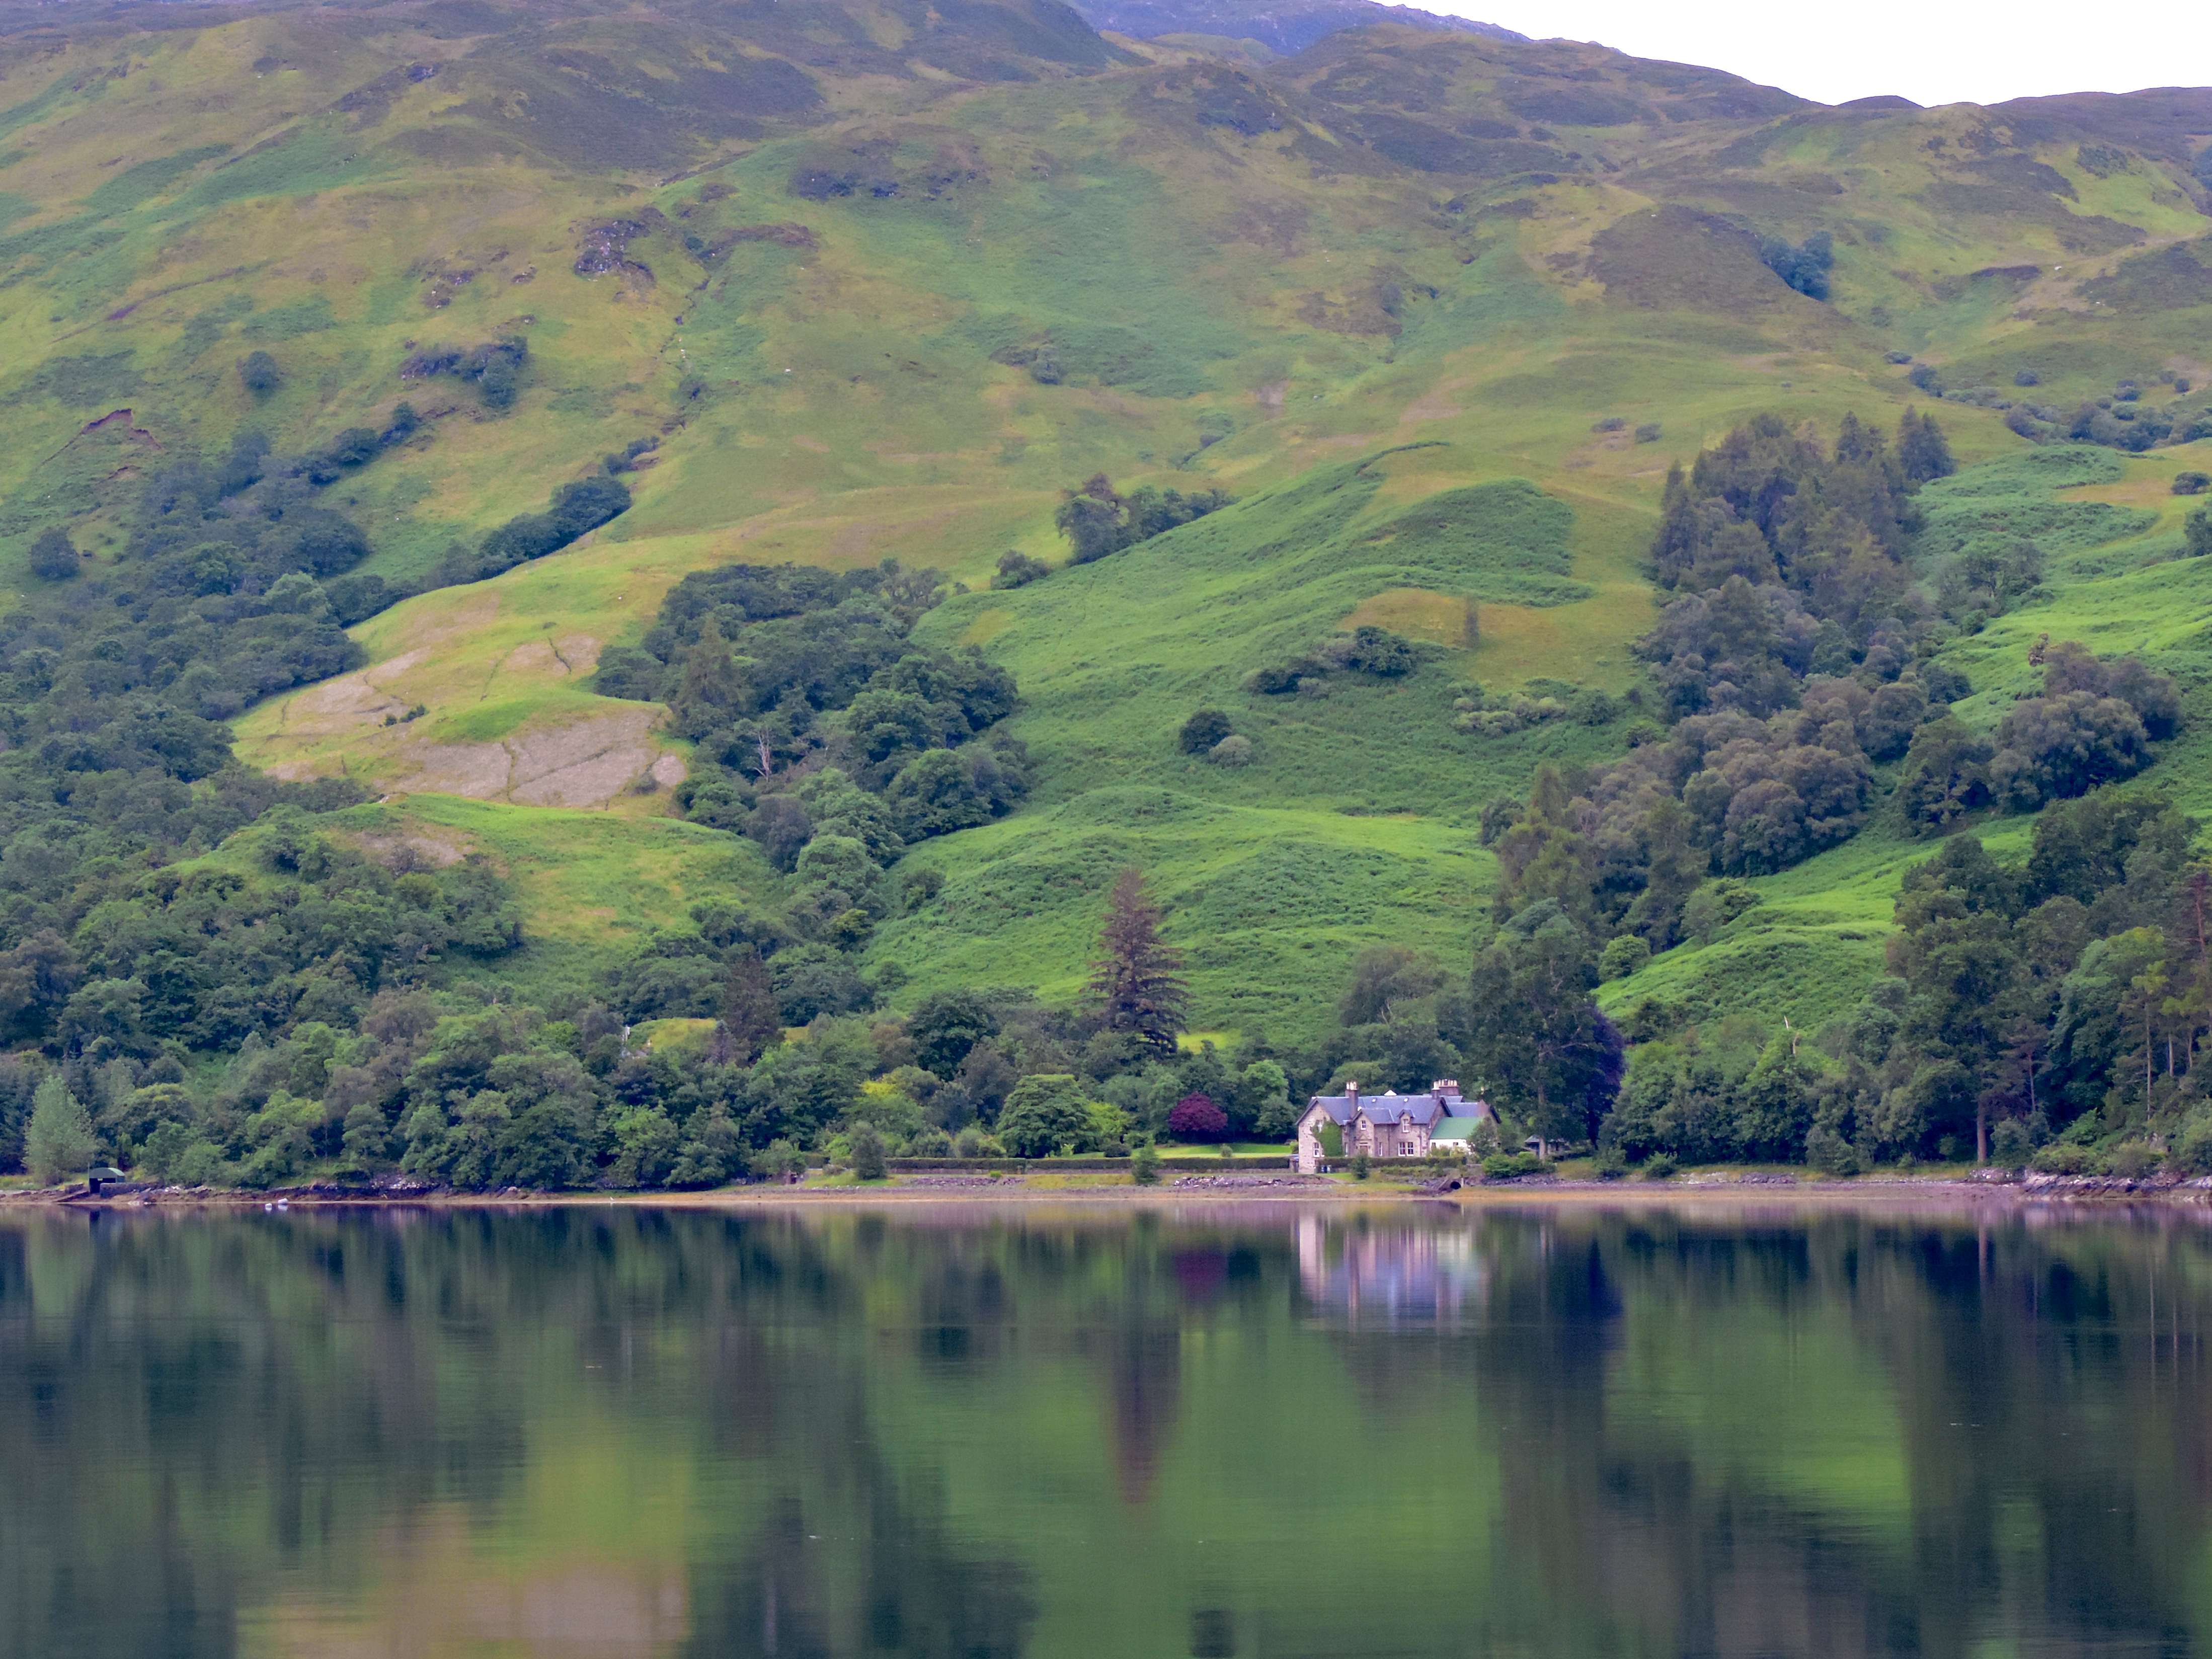 Foto Friday - a house on a mountain lake